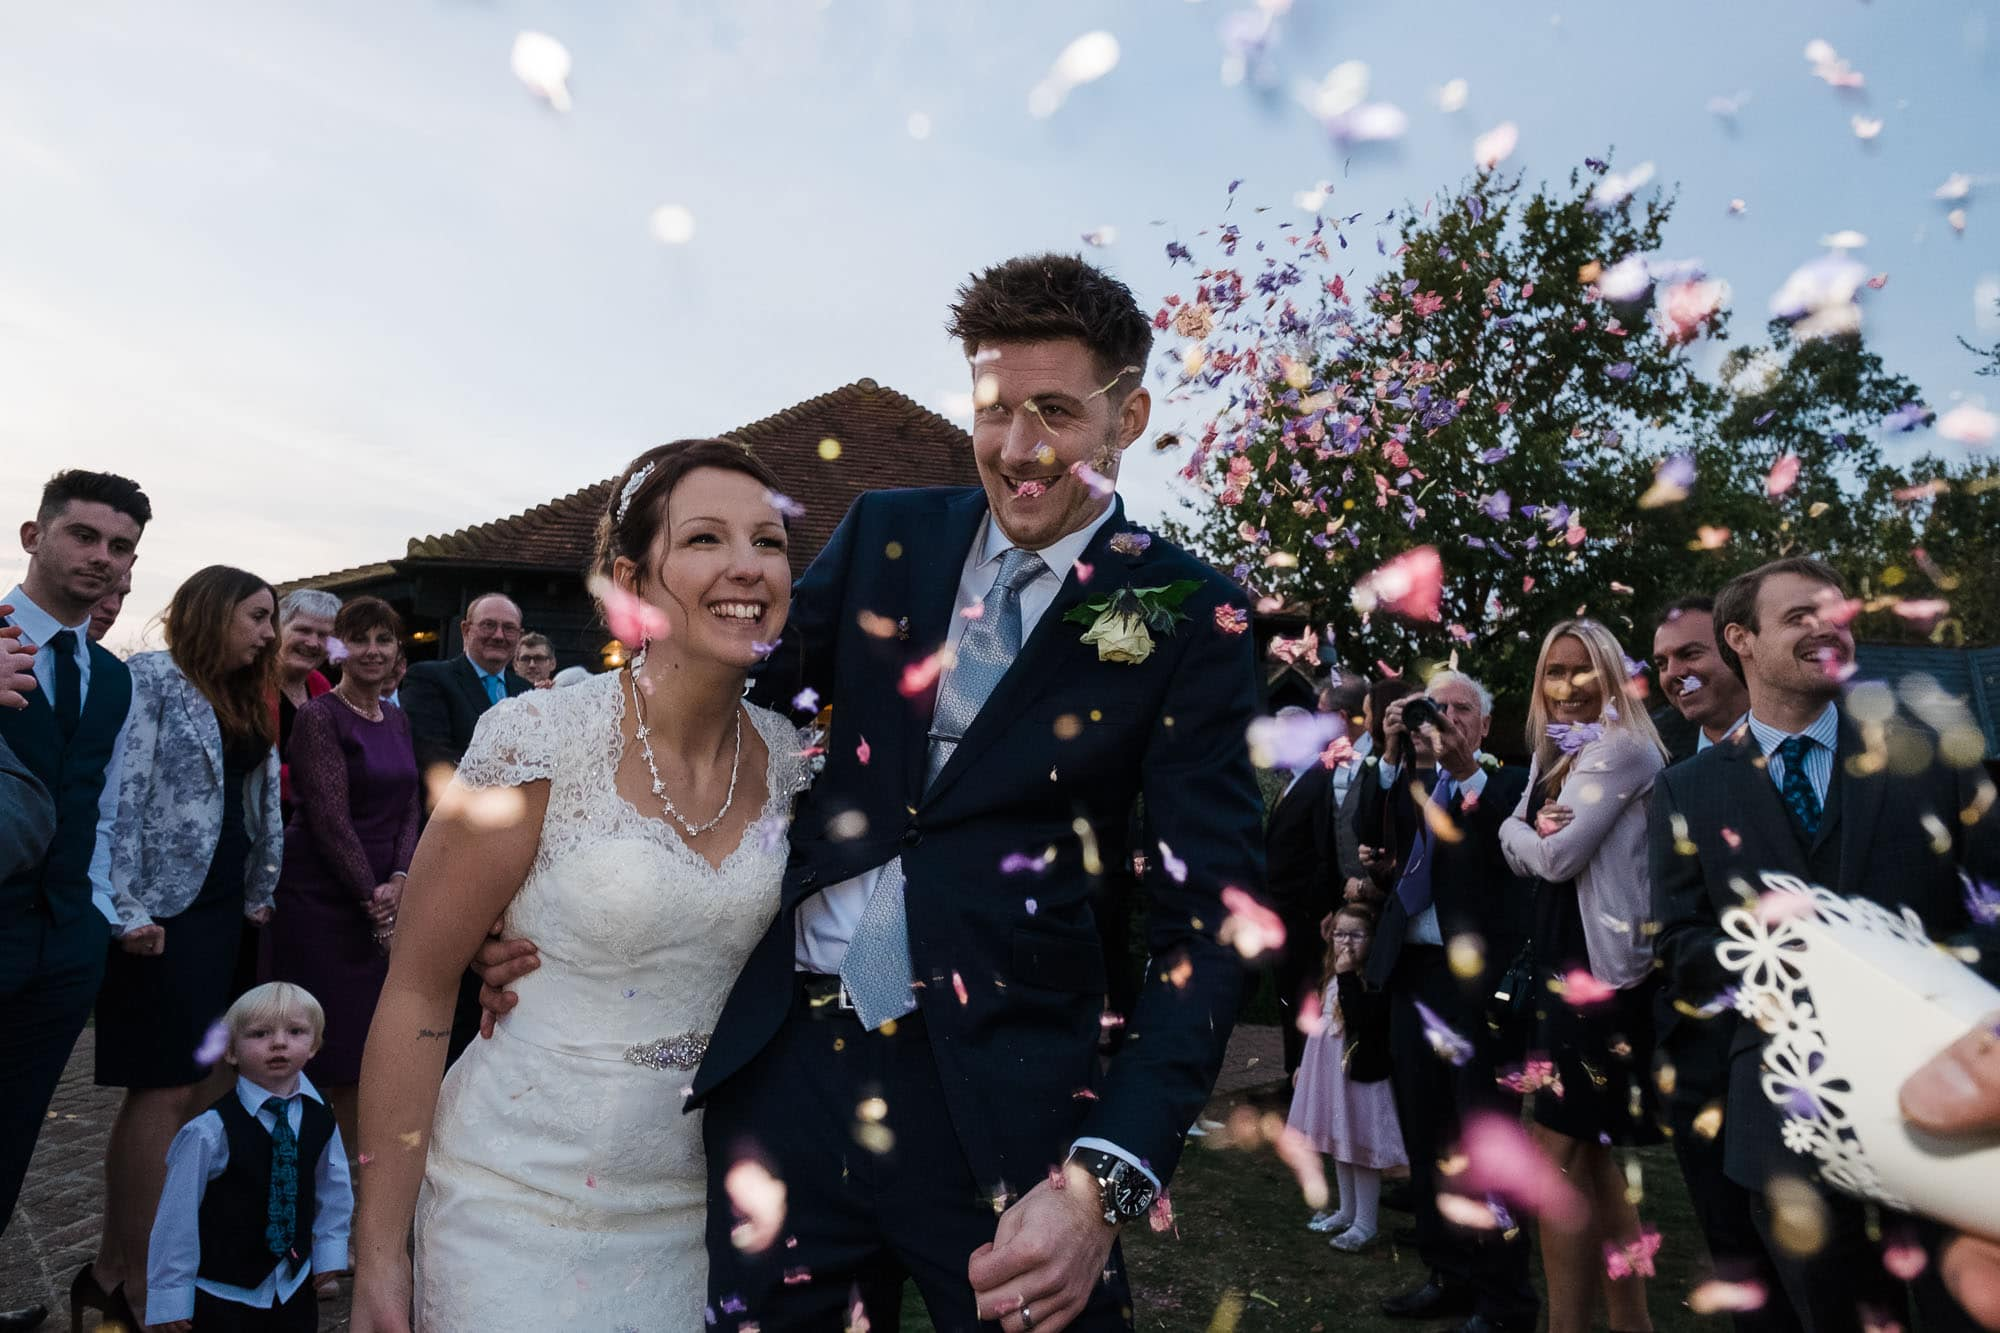 wedding confetti photograph, Crabbs Barn, Kelvedon, Essex.